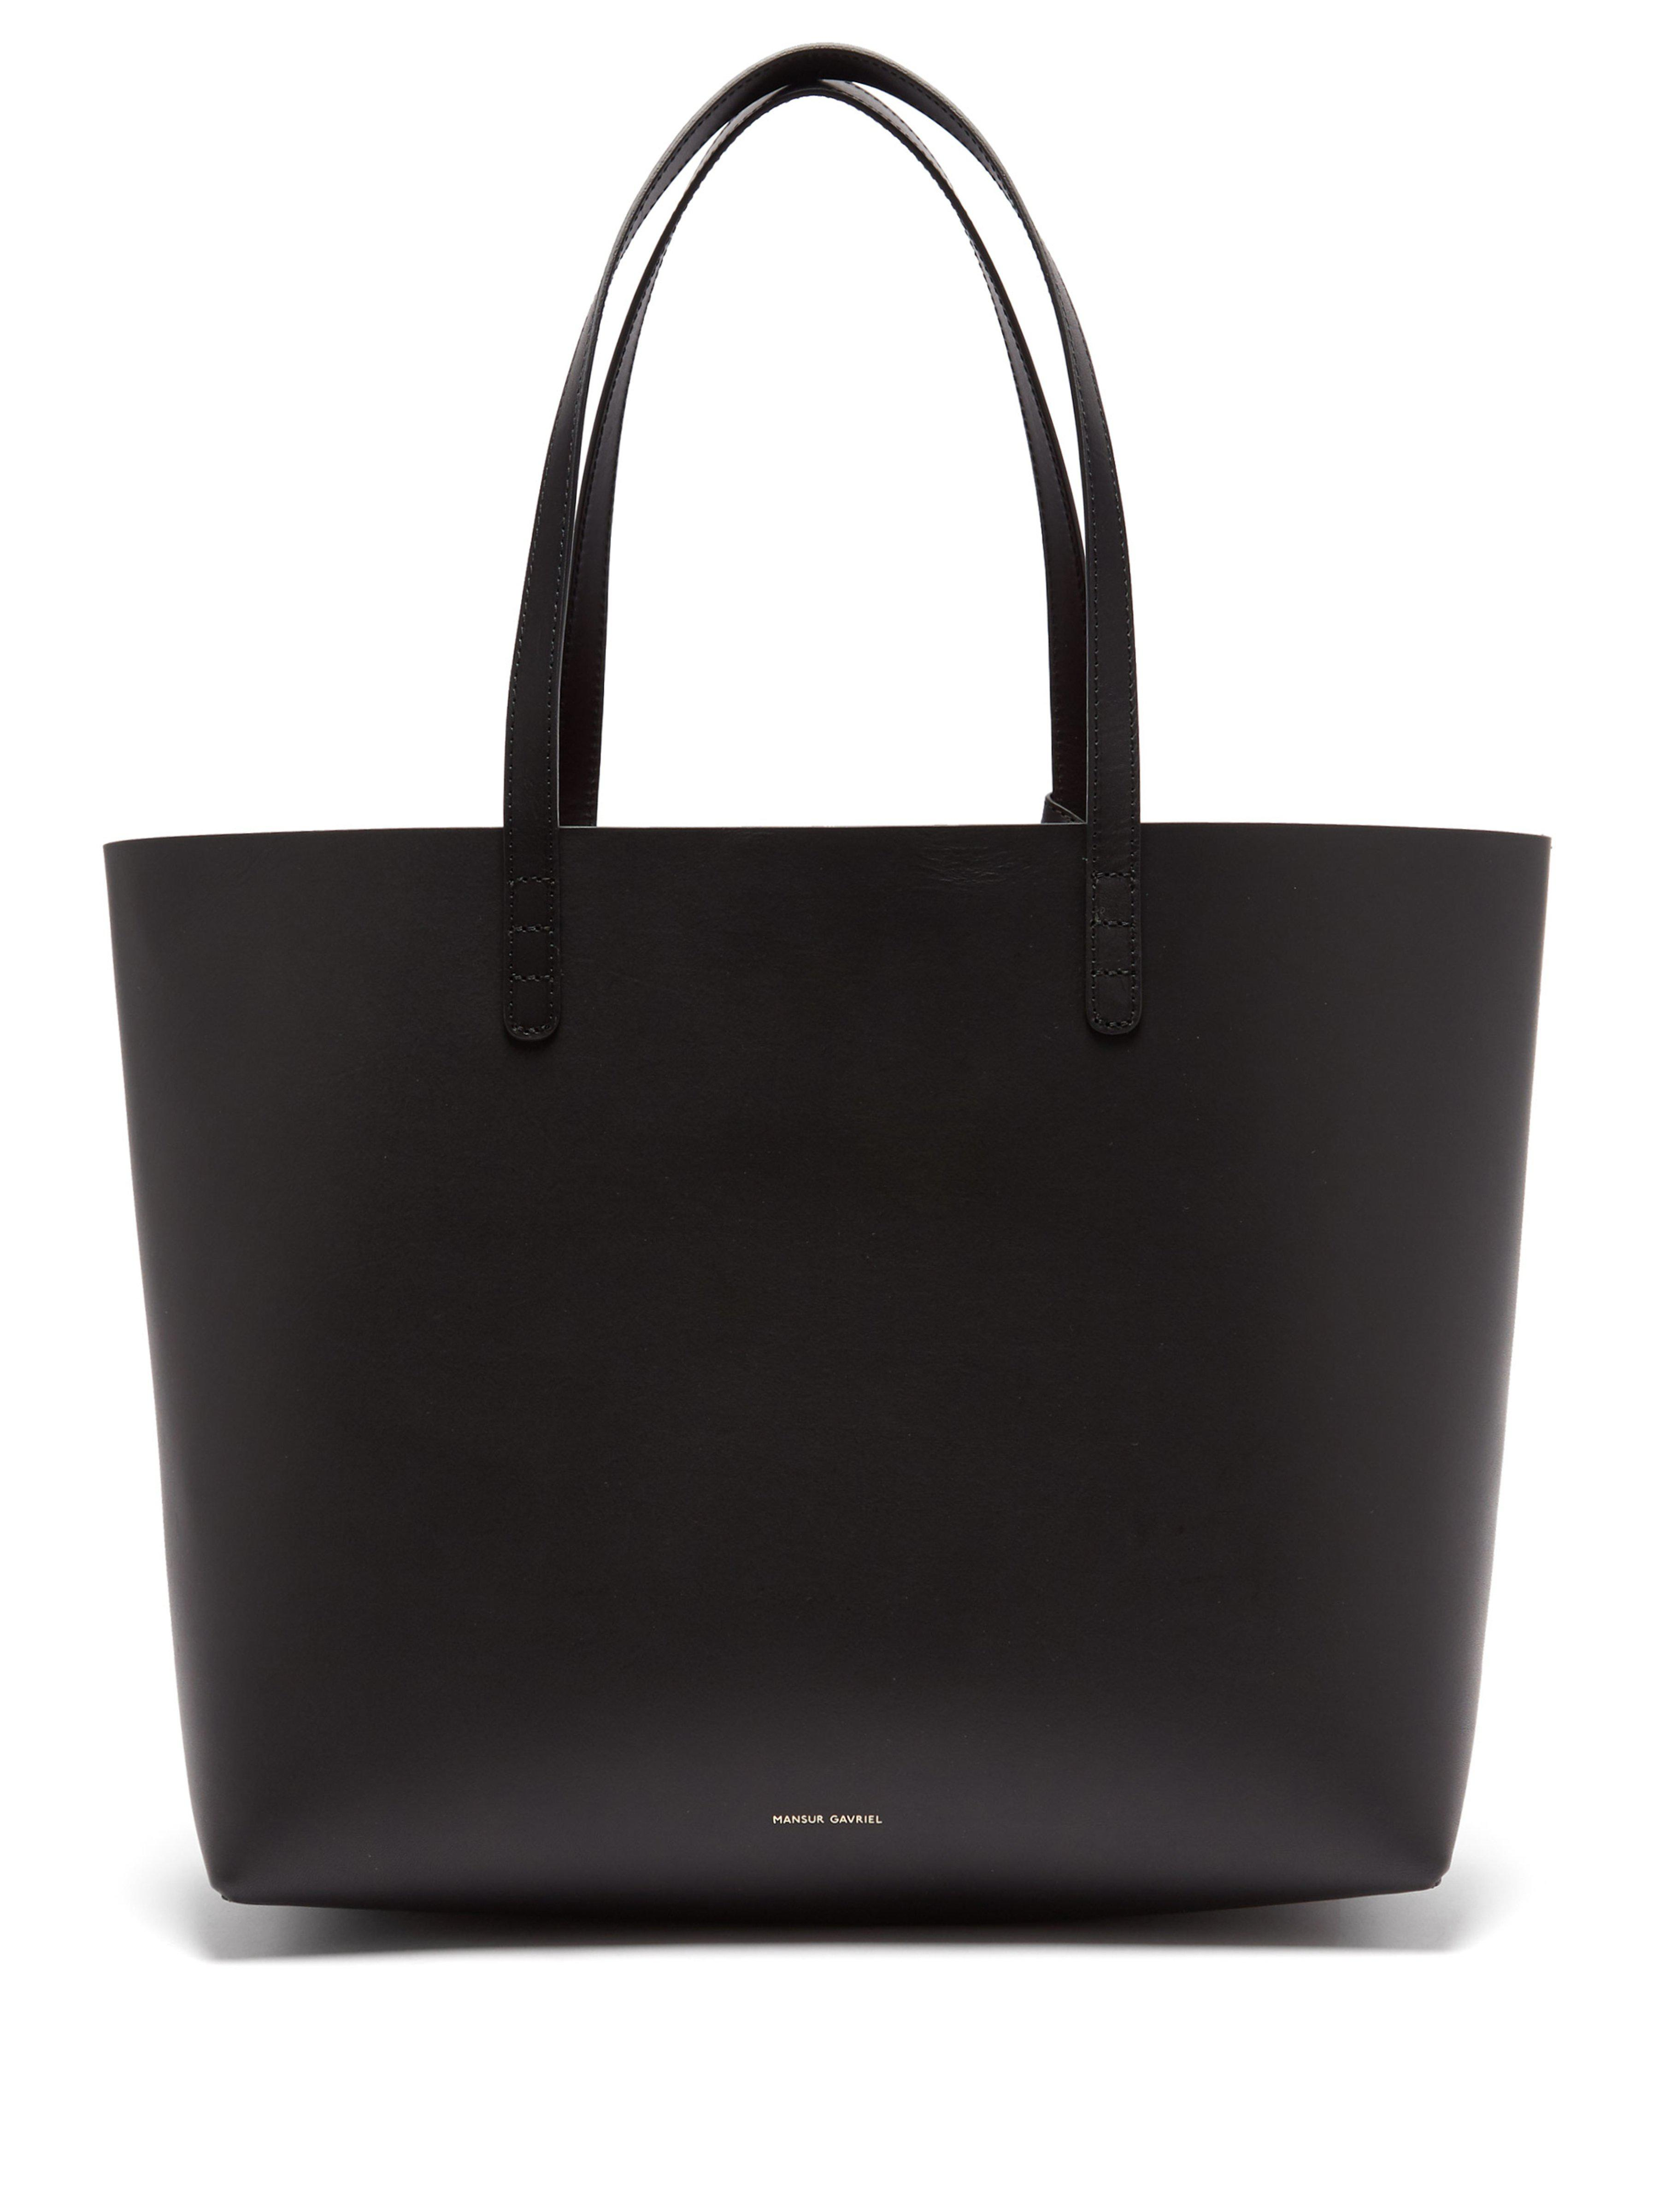 b5e69fb8ea Mansur Gavriel - Black Red Lined Large Leather Tote Bag - Lyst. View  fullscreen